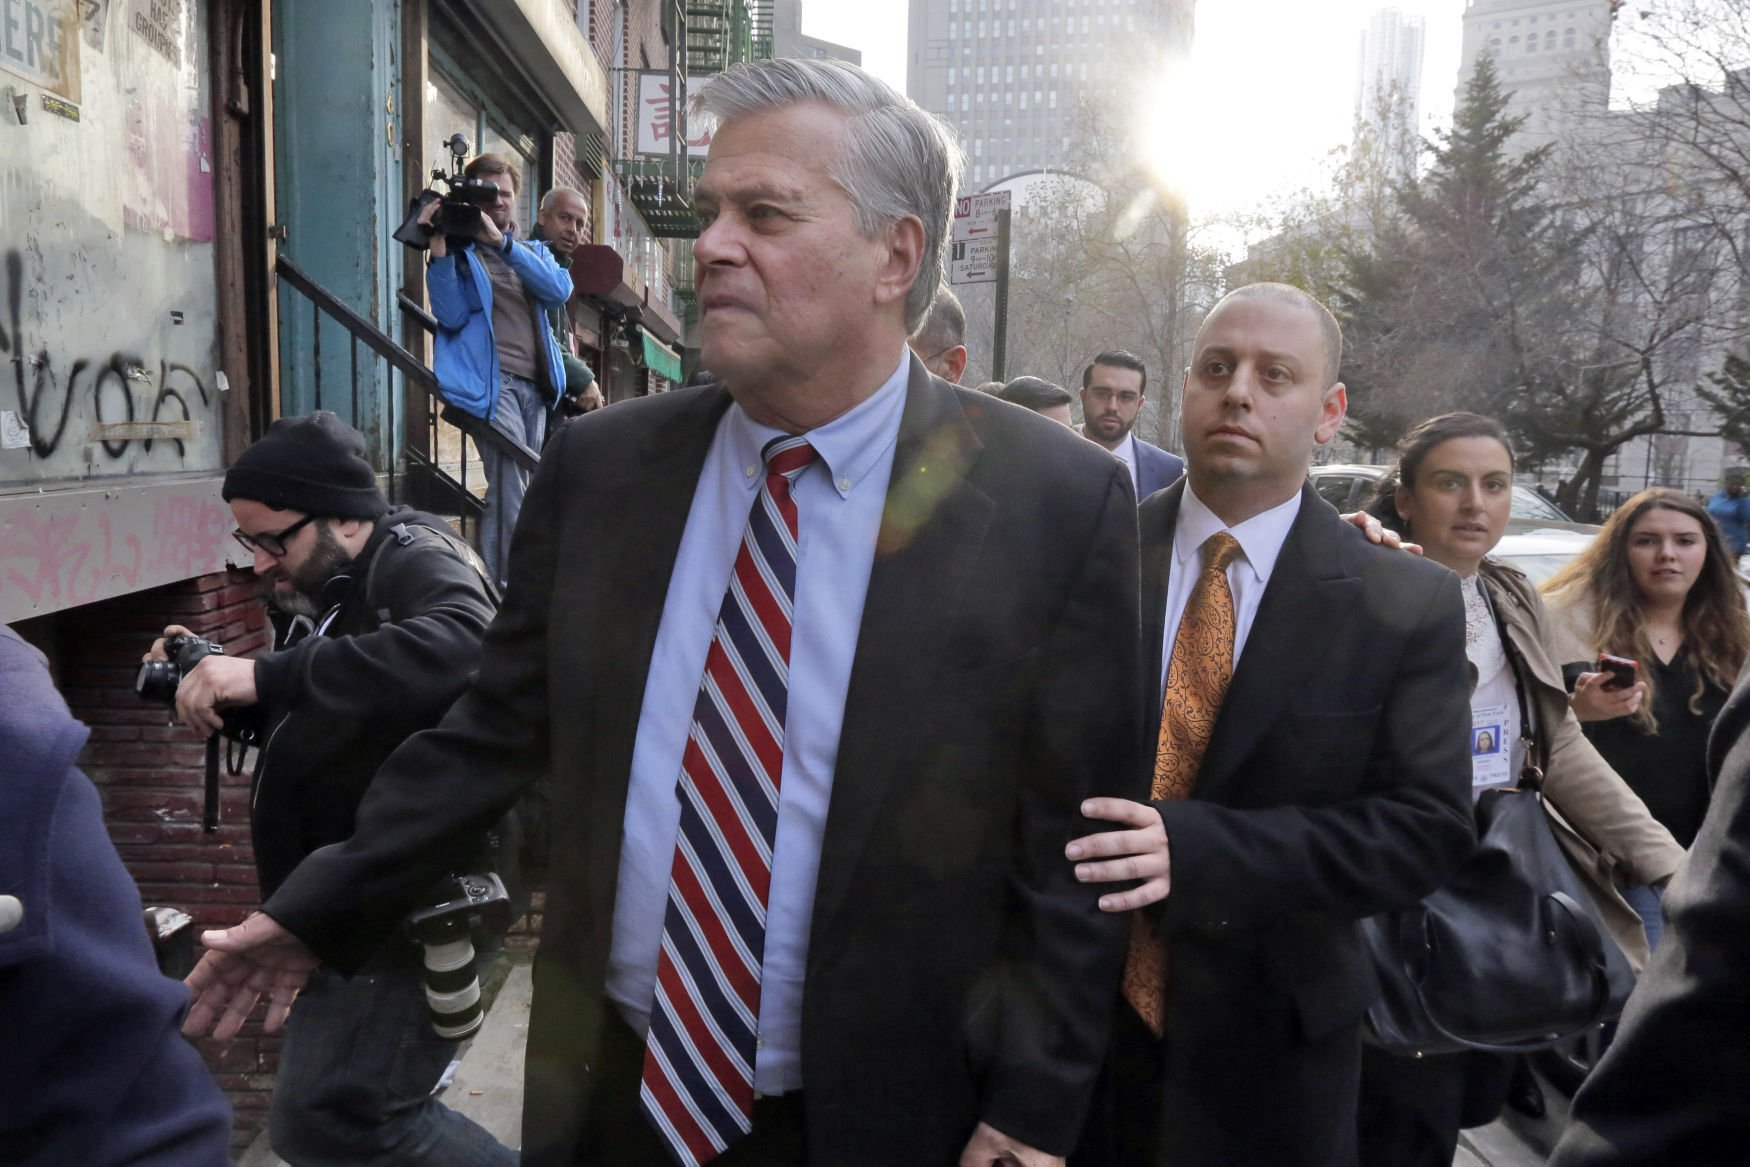 Skelos's 2015 corruption conviction is overturned